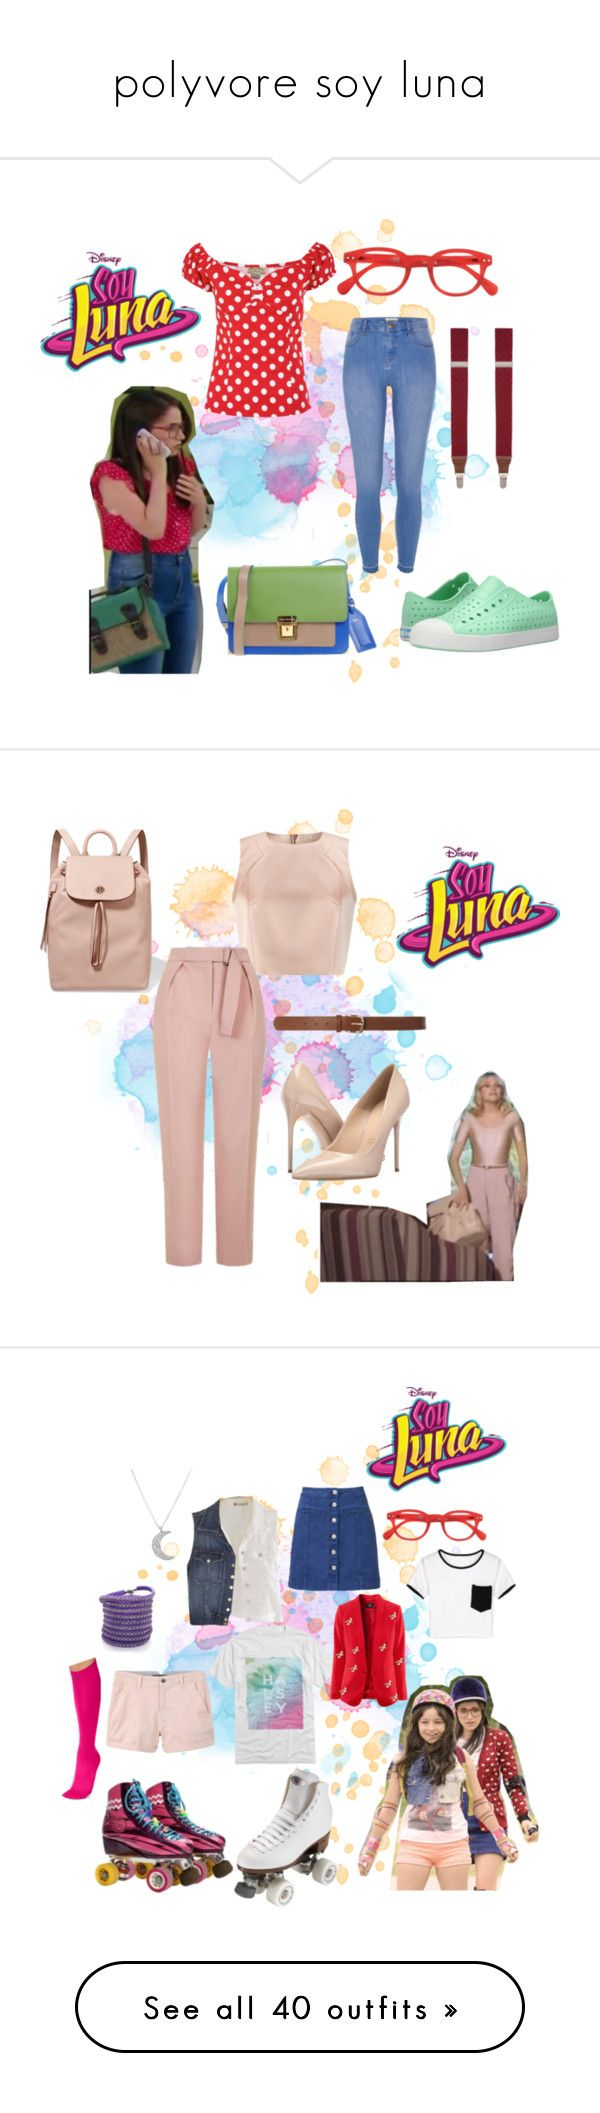 """""""polyvore soy luna"""" by maria-look on Polyvore featuring See Concept, Native Shoes, Saddlebred, Erika Cavallini Semi-Couture, River Island, plus size clothing, Jacques Vert, Tory Burch, Topshop and Dorothy Perkins"""